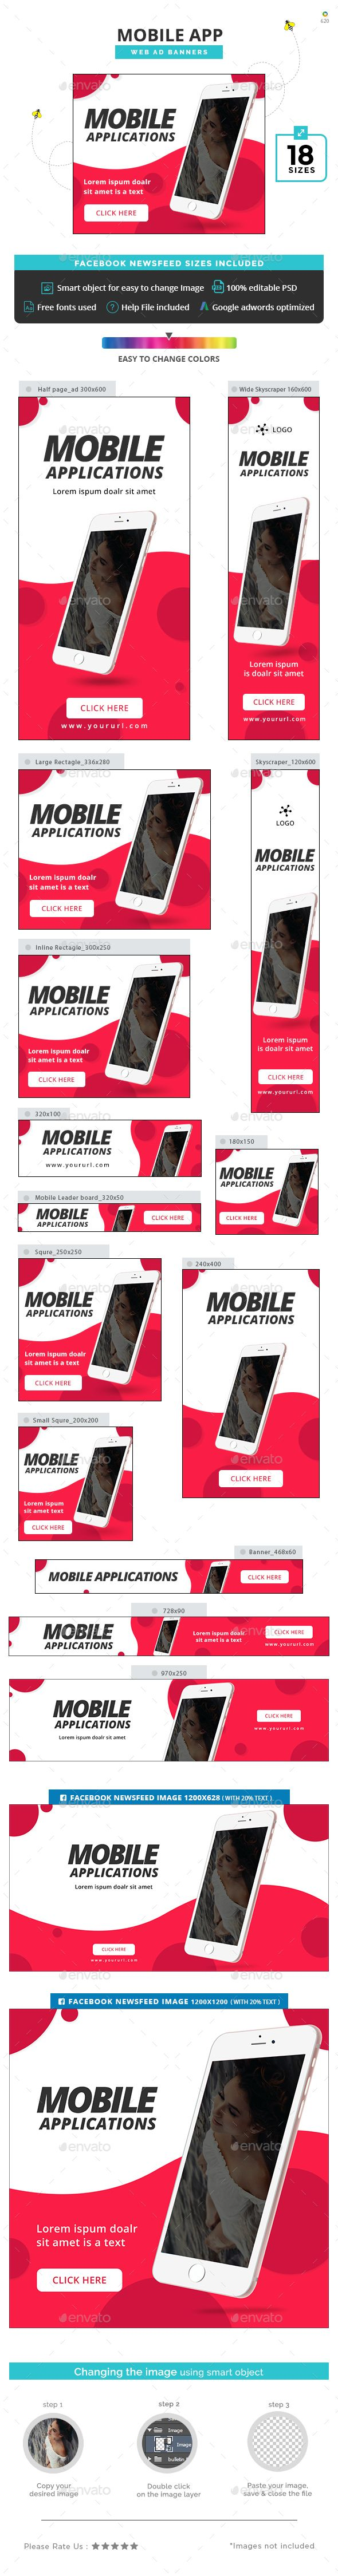 Mobile App Banners - #Banners & Ads #Web Elements